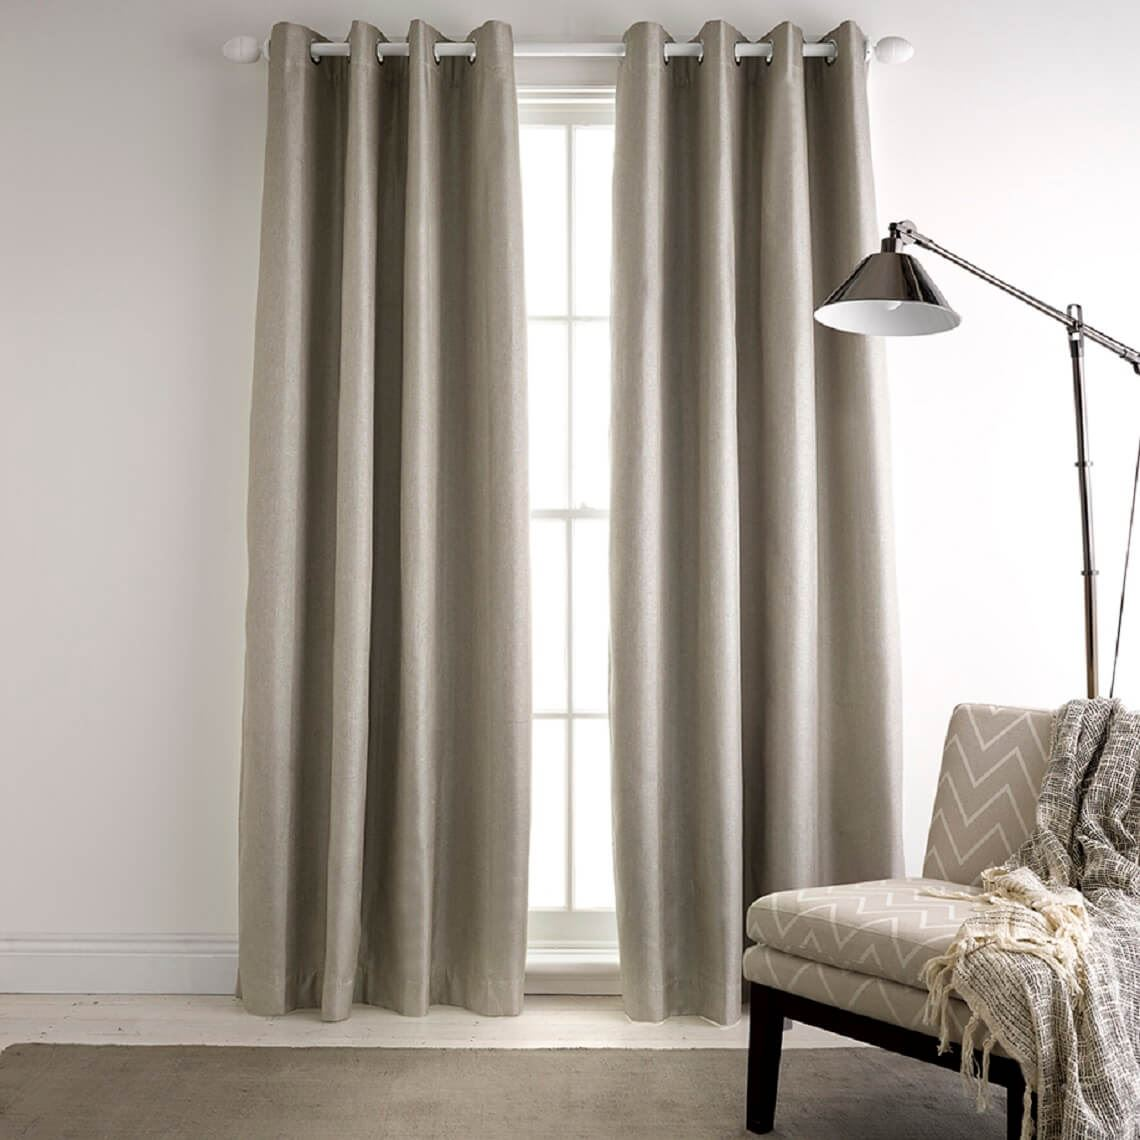 Milton Blockout Curtain Size W 140cm x D 1cm x H 230cm in Mink 100% Polyester/Acrylic Flock Coating/Stainless Steel Freedom by Freedom, a Curtains for sale on Style Sourcebook